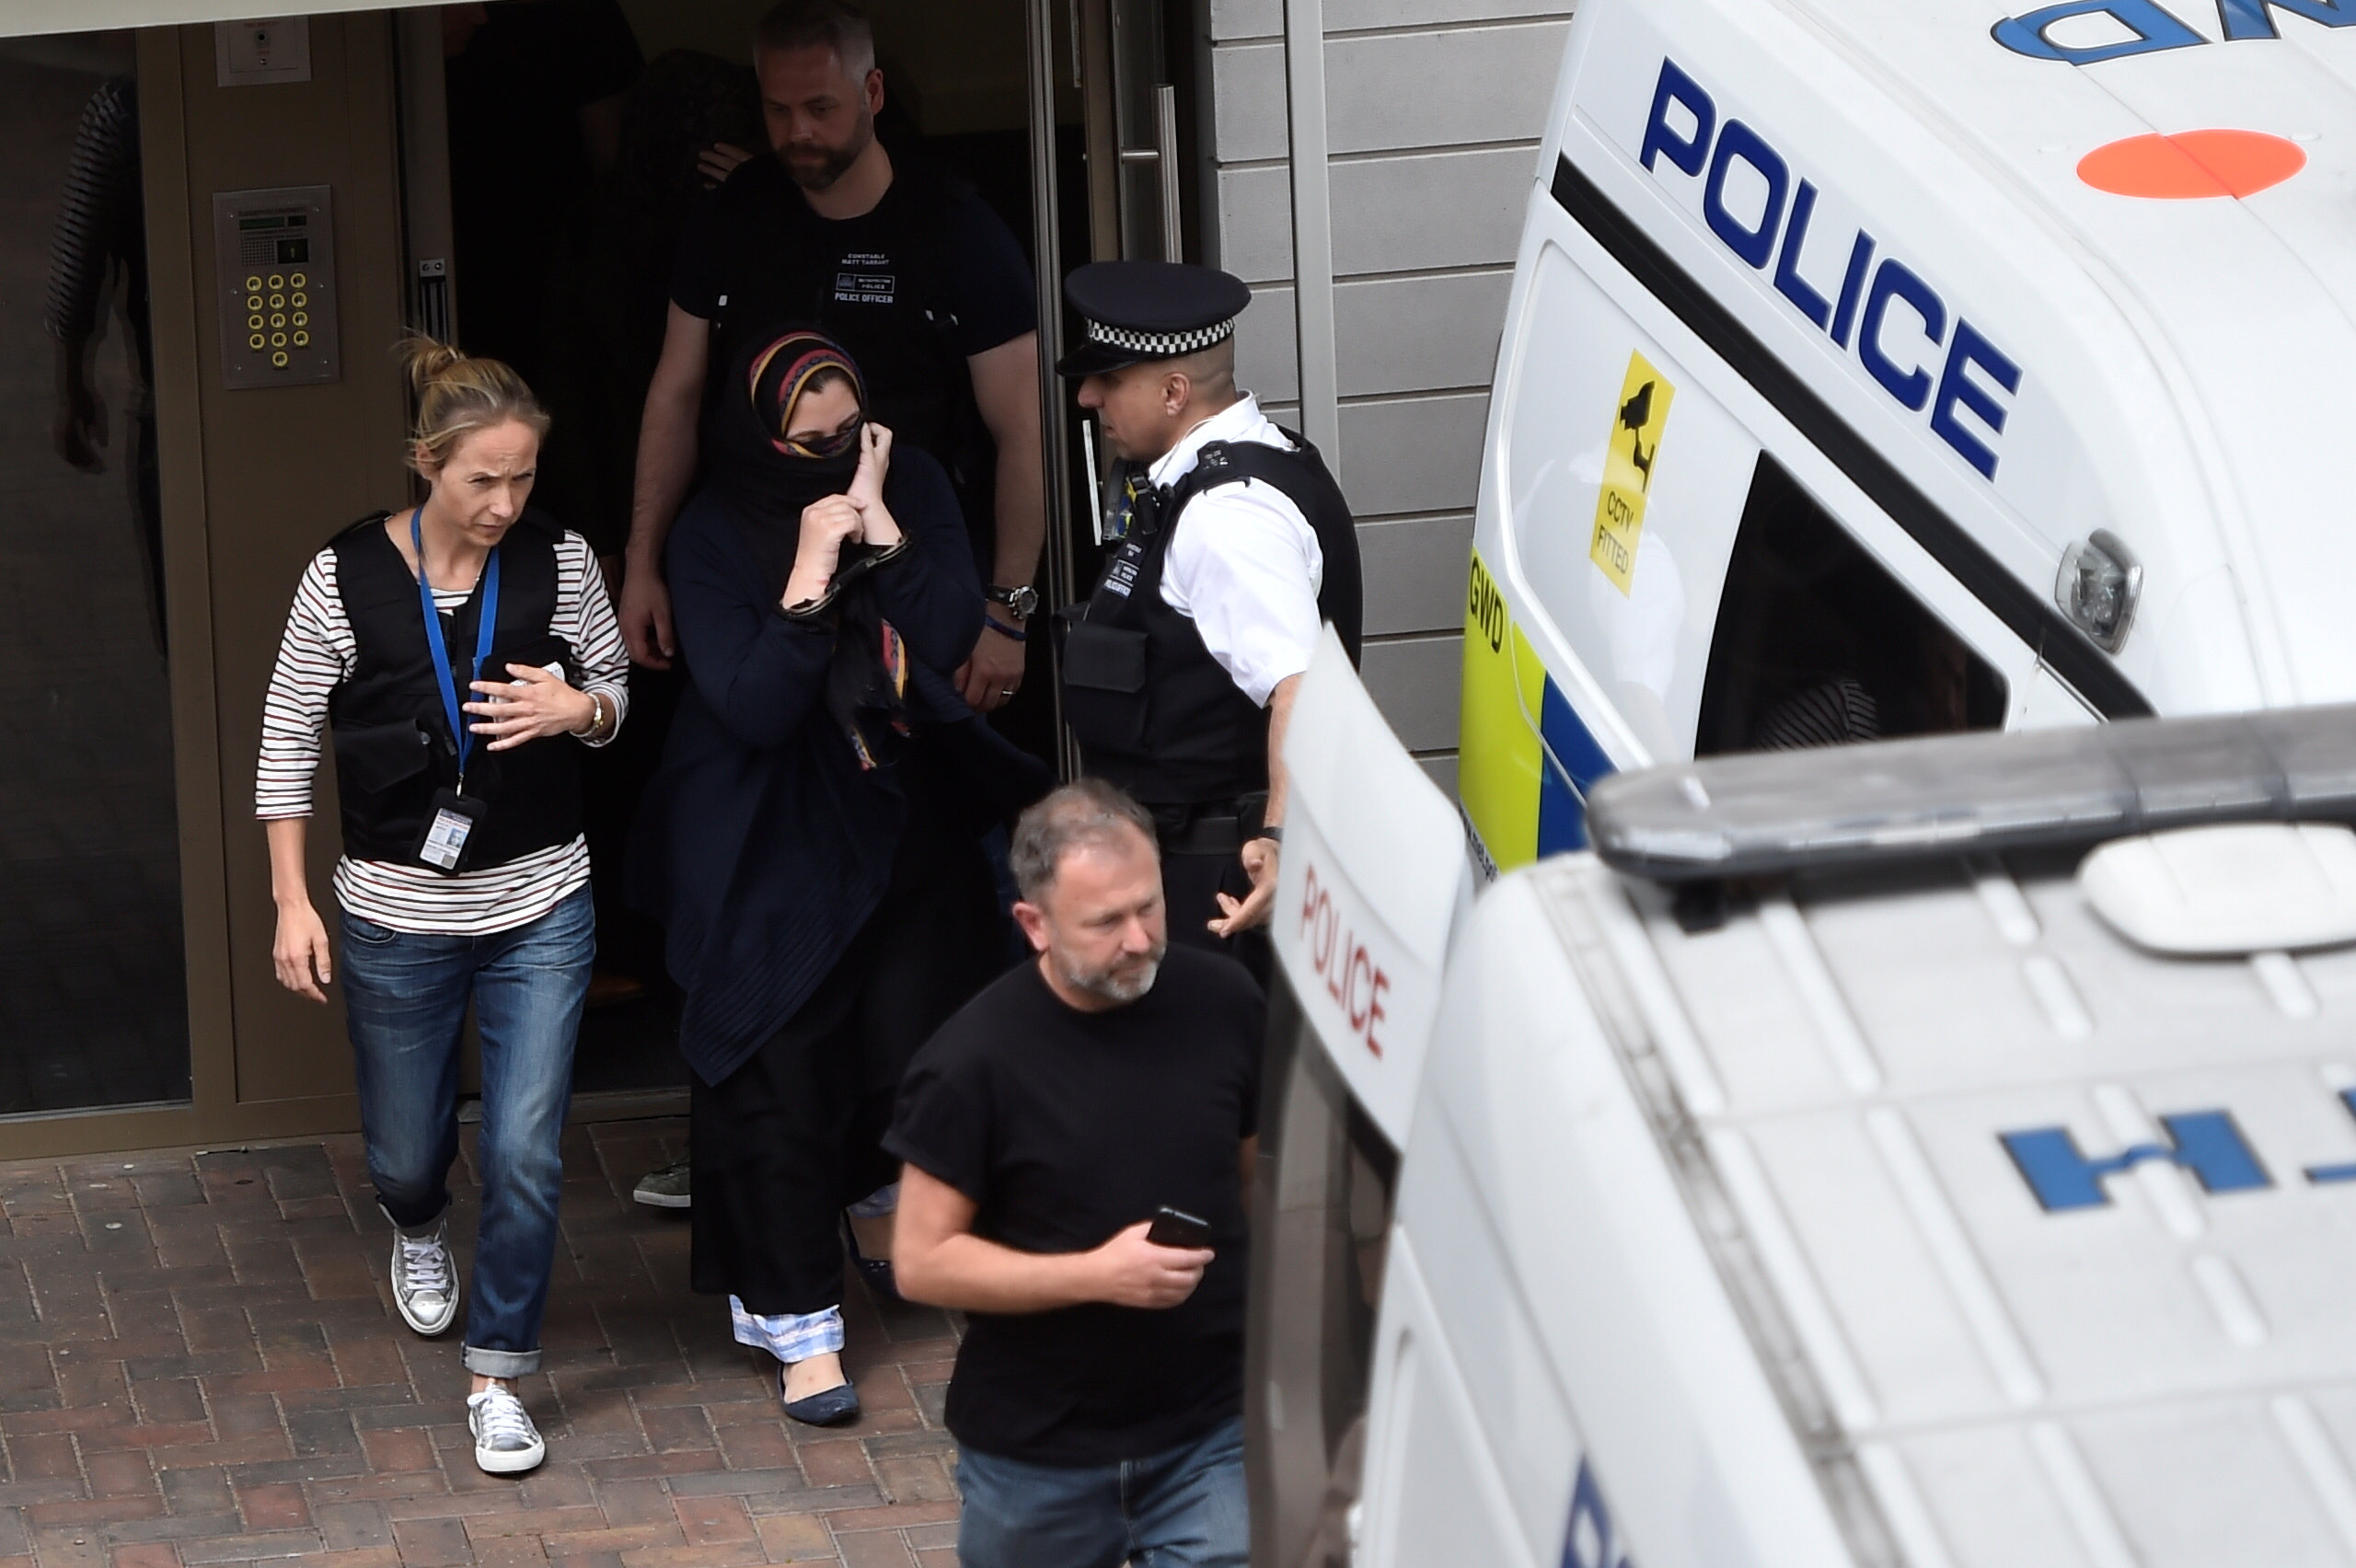 Police officers escort a woman to a police van after raiding a block of flats in Barking, east London, Britain on June 4, 2017. (REUTERS/Hannah McKay)